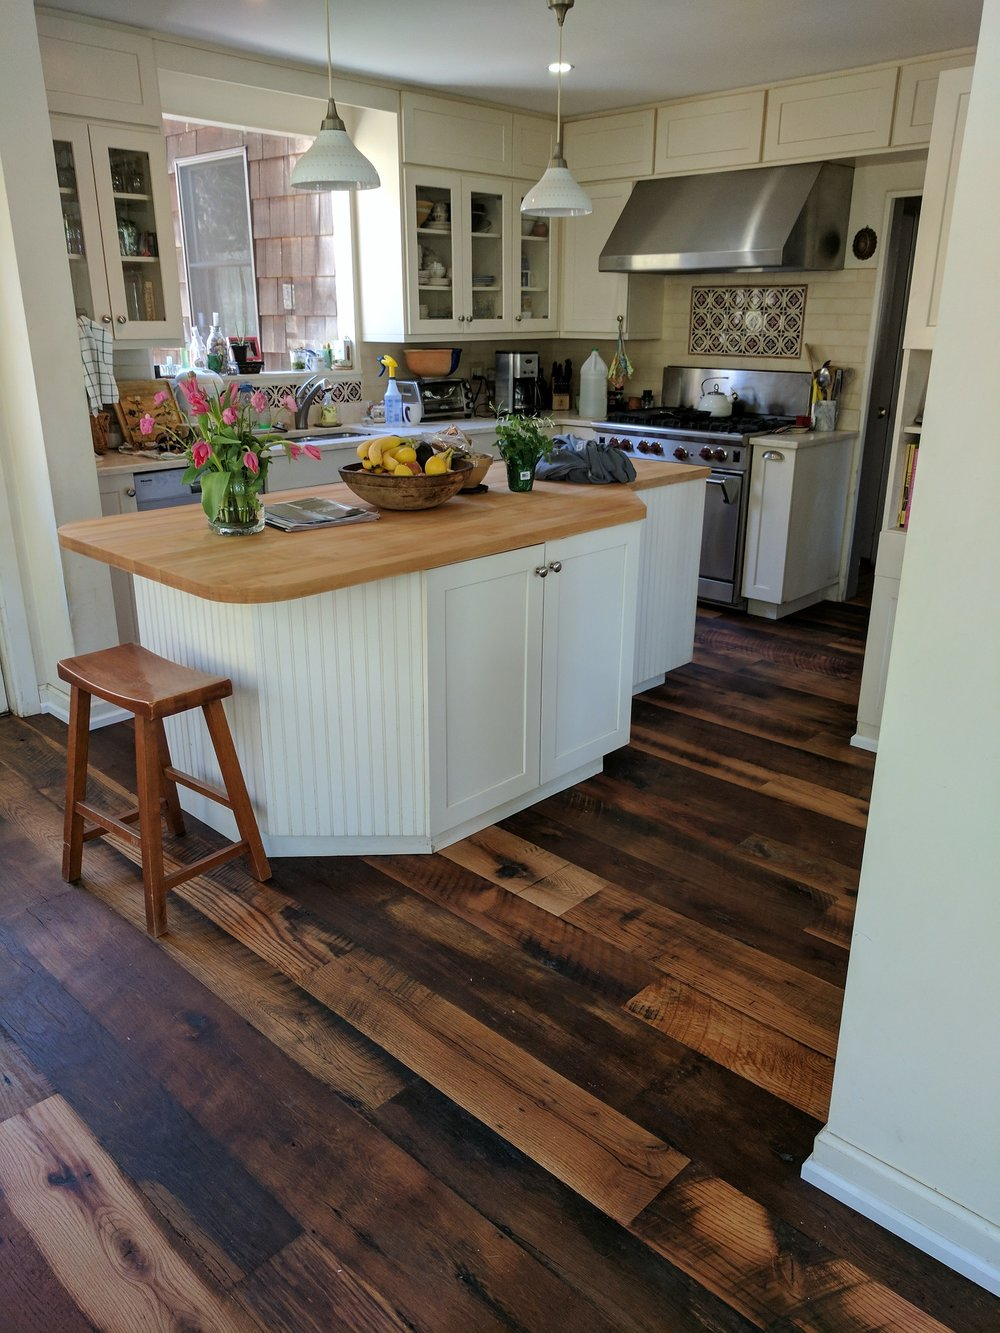 Anthony is very dedicated to doing a professional job. He made recommendations that will save me money in the long run. I would definitely recommend Anthony Palandro to anyone in need of flooring. -